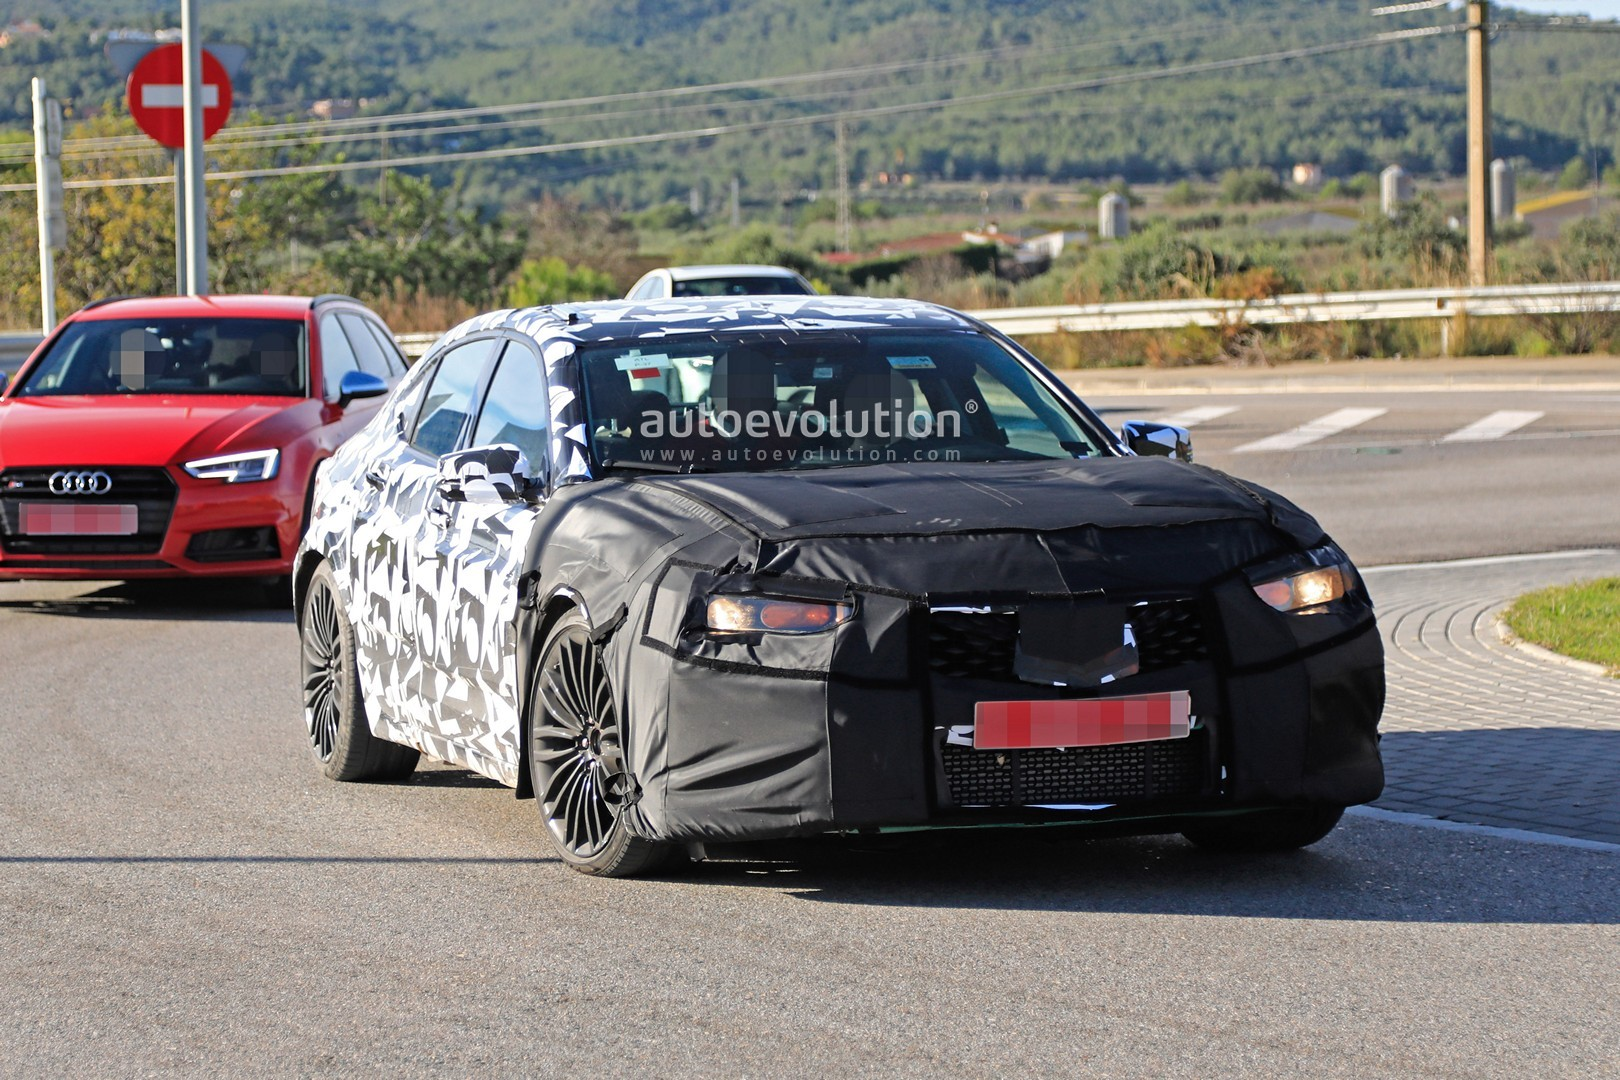 2020 Acura TLX Type S, Redesign, Engine & Pricing >> 2020 Acura Tlx Type S Spied With Audi S4 And Amg C43 V6 Turbo